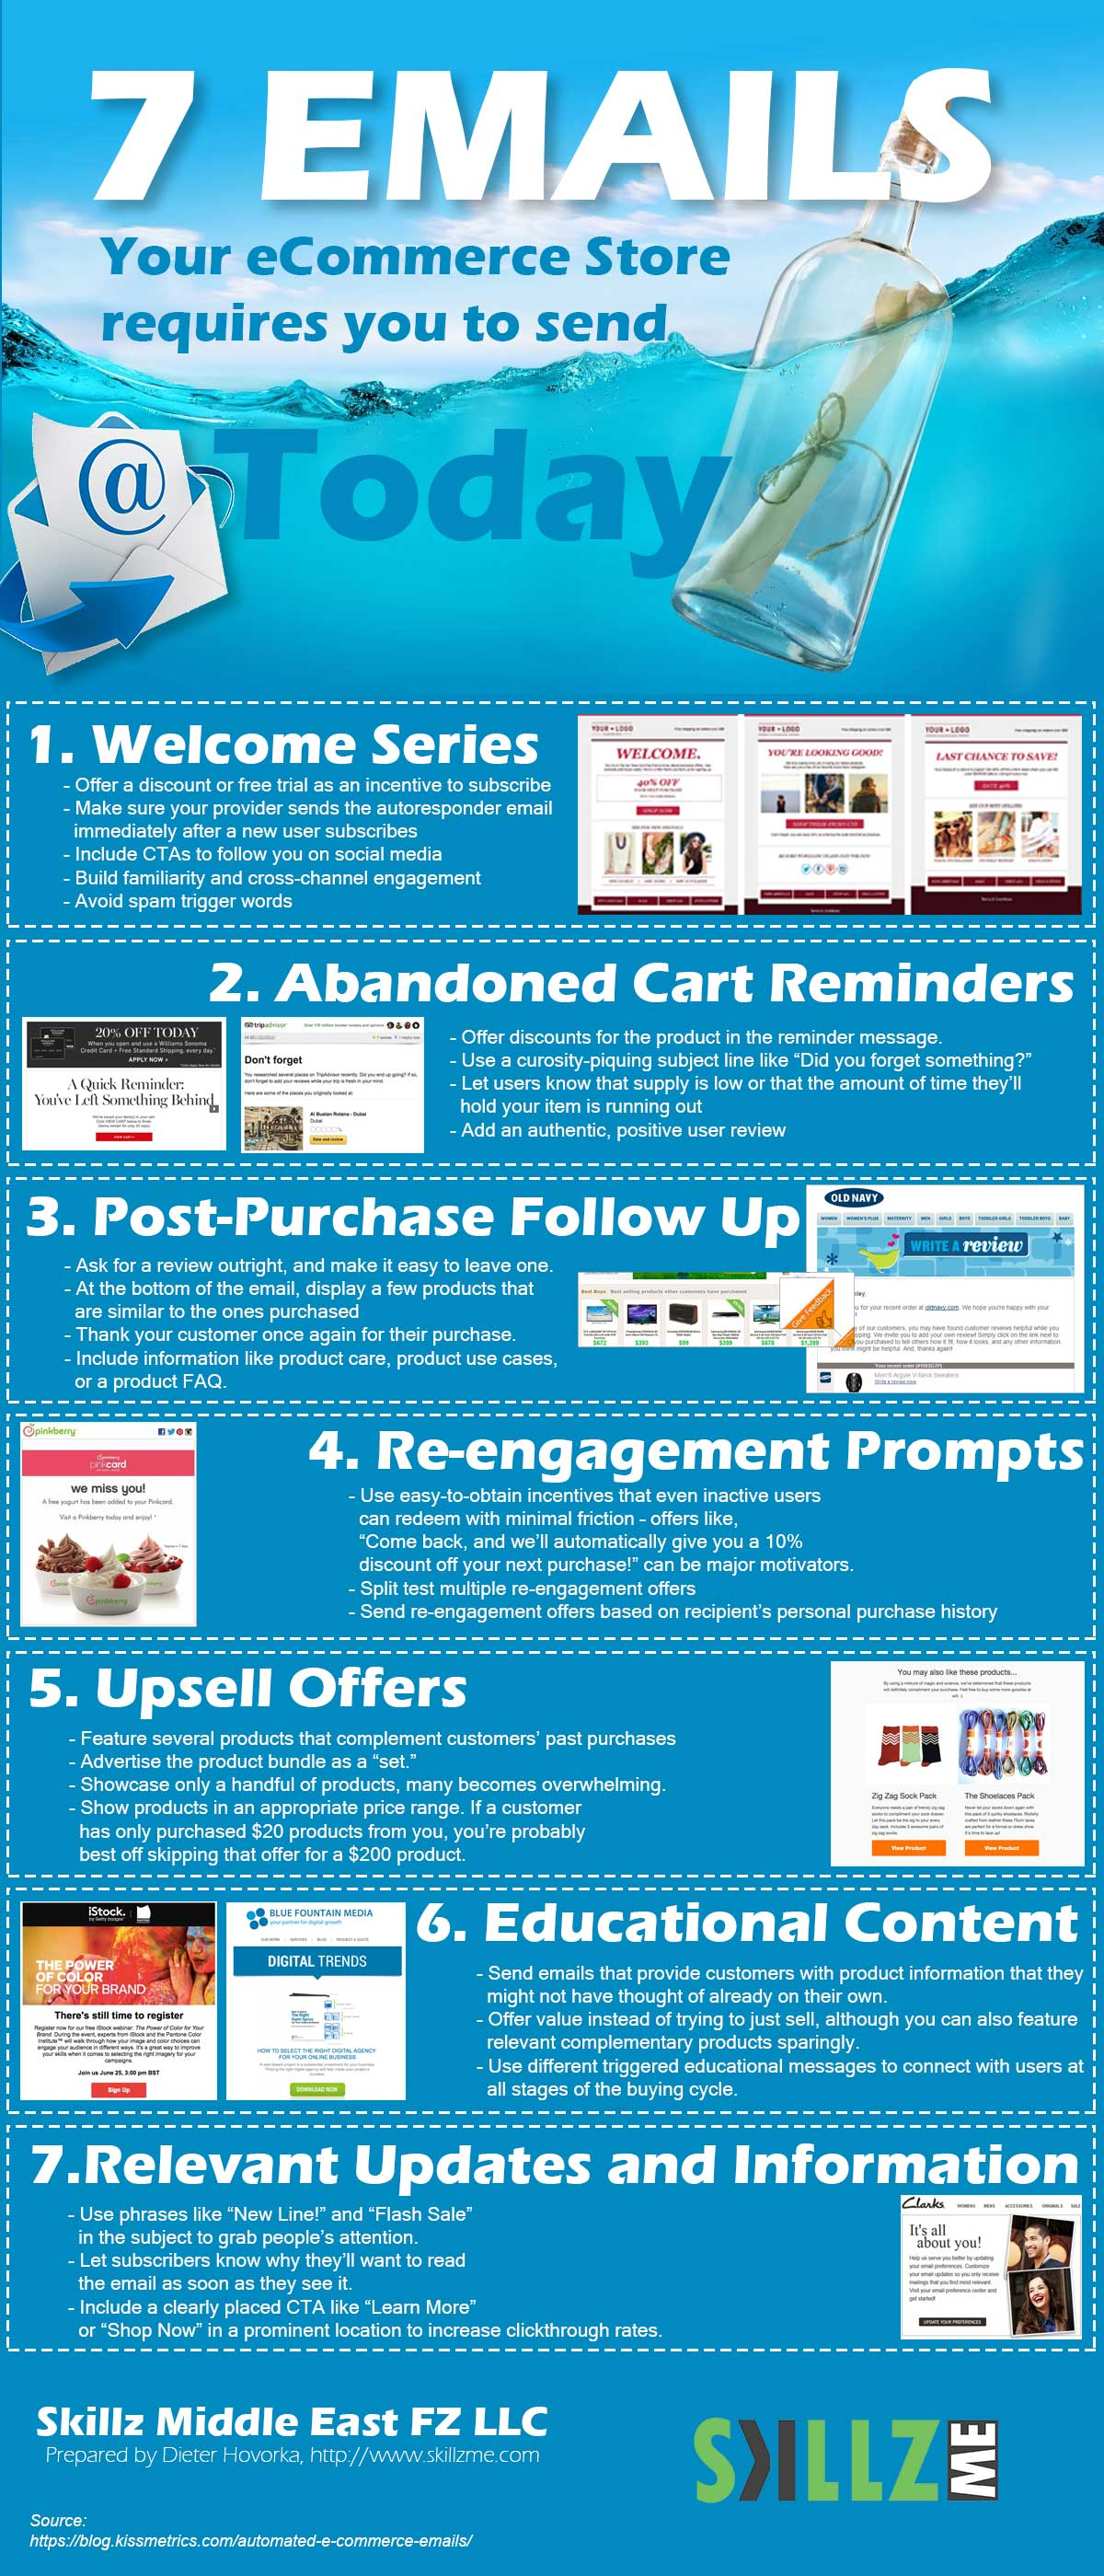 Infographic 7 Emails Your eCommerce Store requires to be send Today